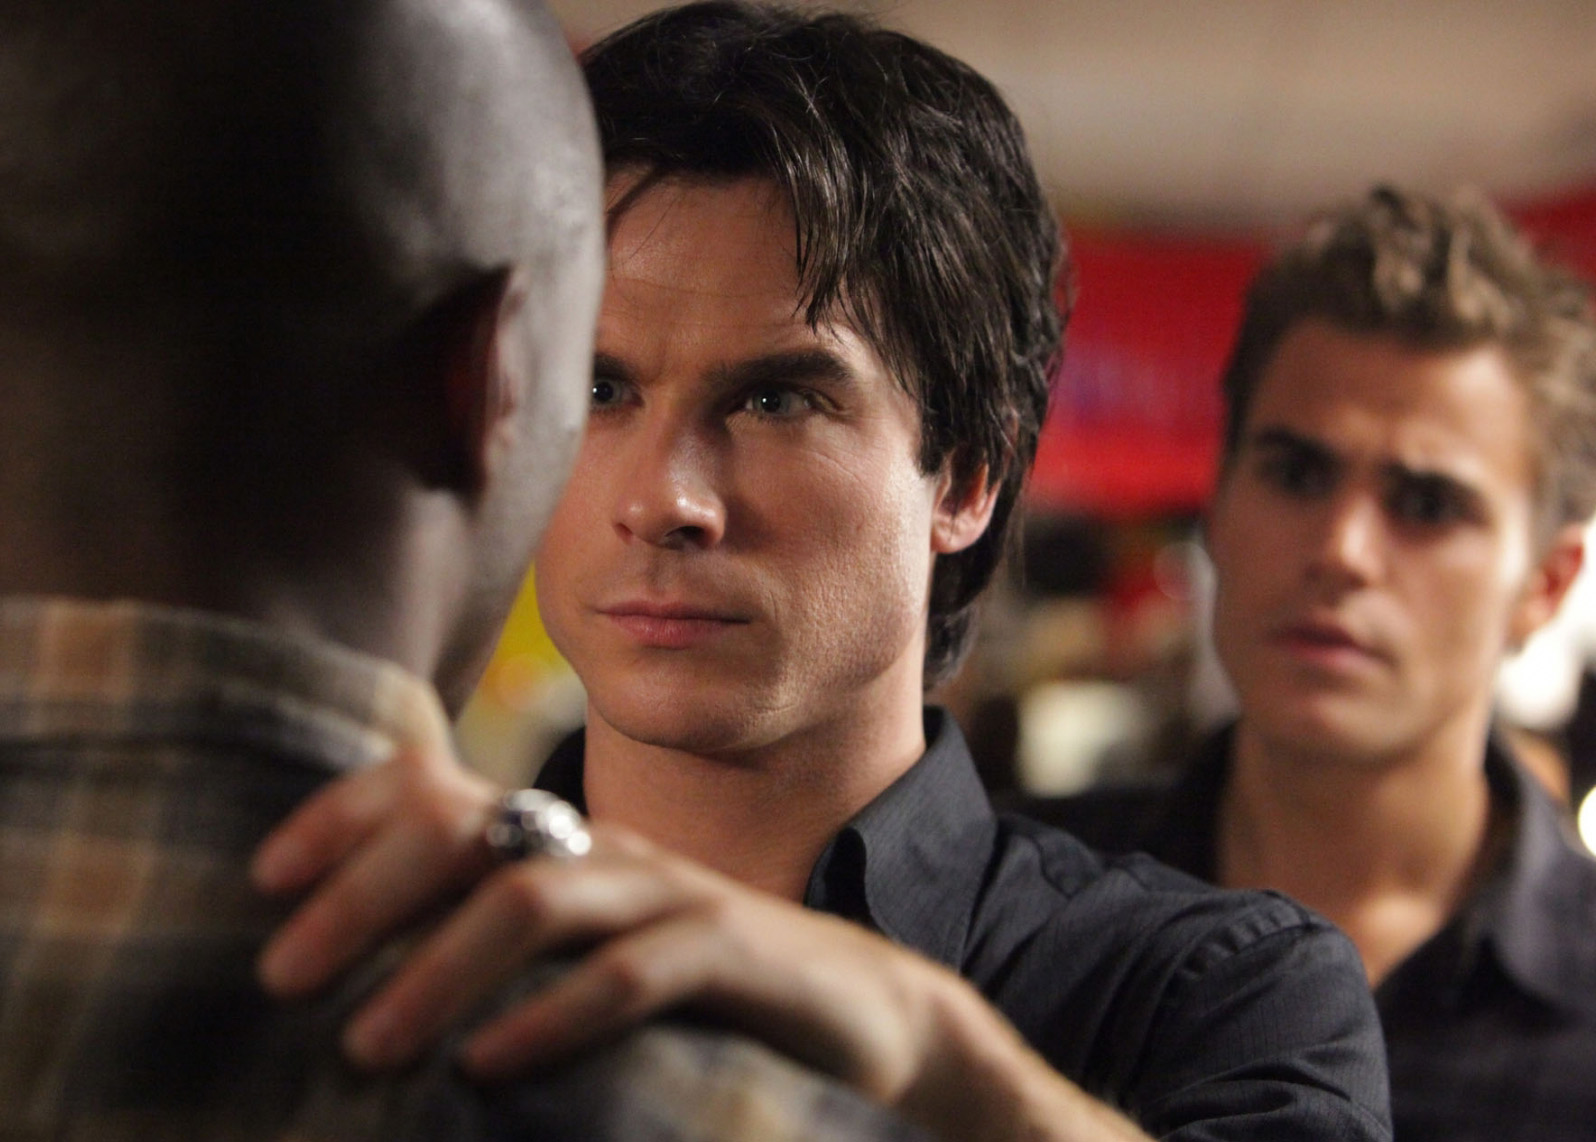 File:Vampire-diaries-season-2-brave-new-world-promo-pics-14.jpg